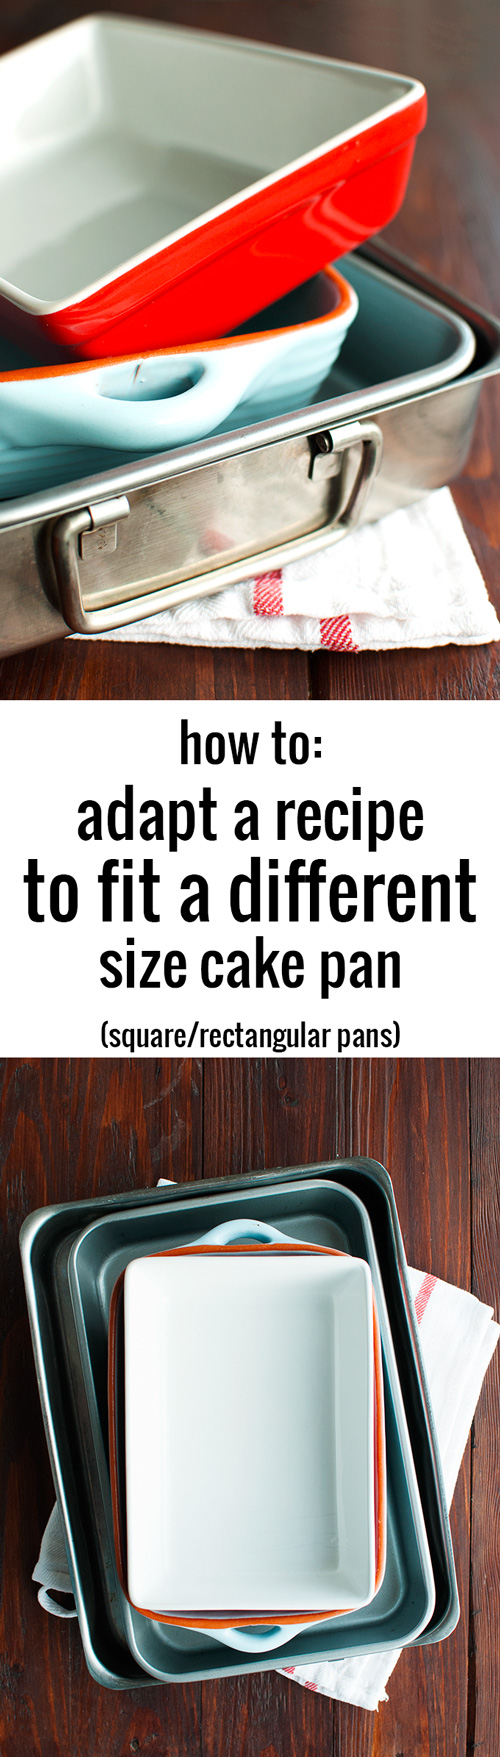 How to Adapt a Recipe to Fit a Different Size Cake Pan | thetoughcookie.com